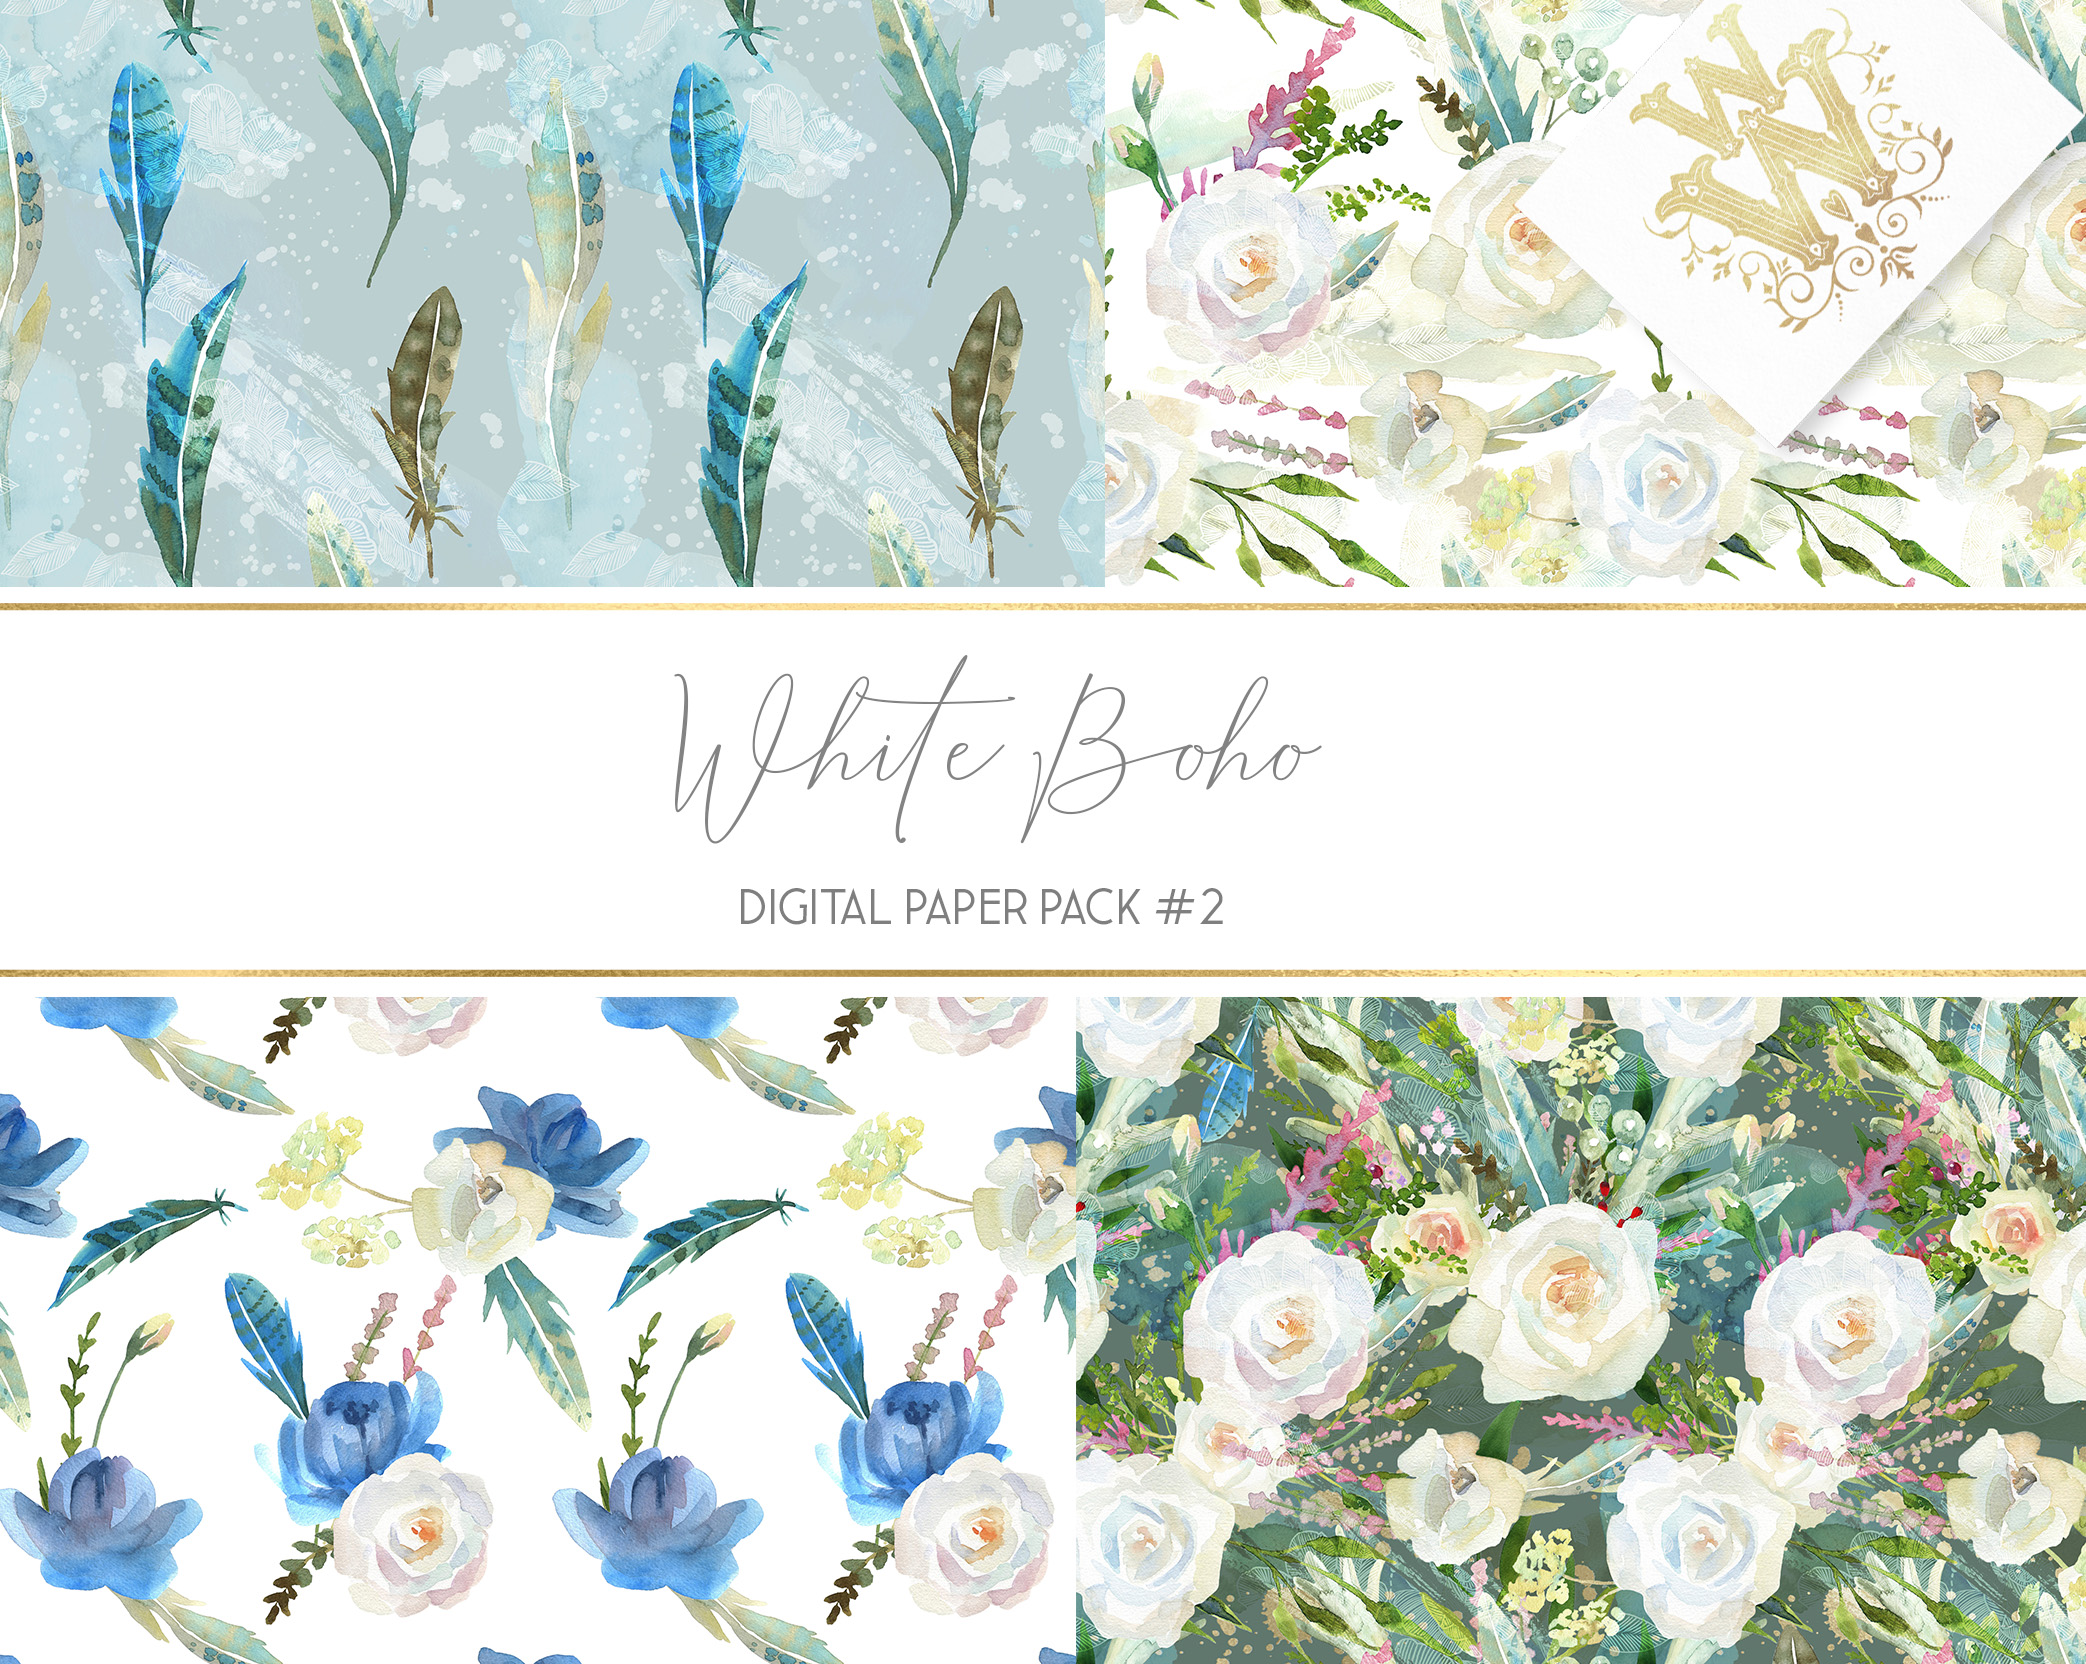 Boho chic digital paper pack, watercolor floral seamless example image 4